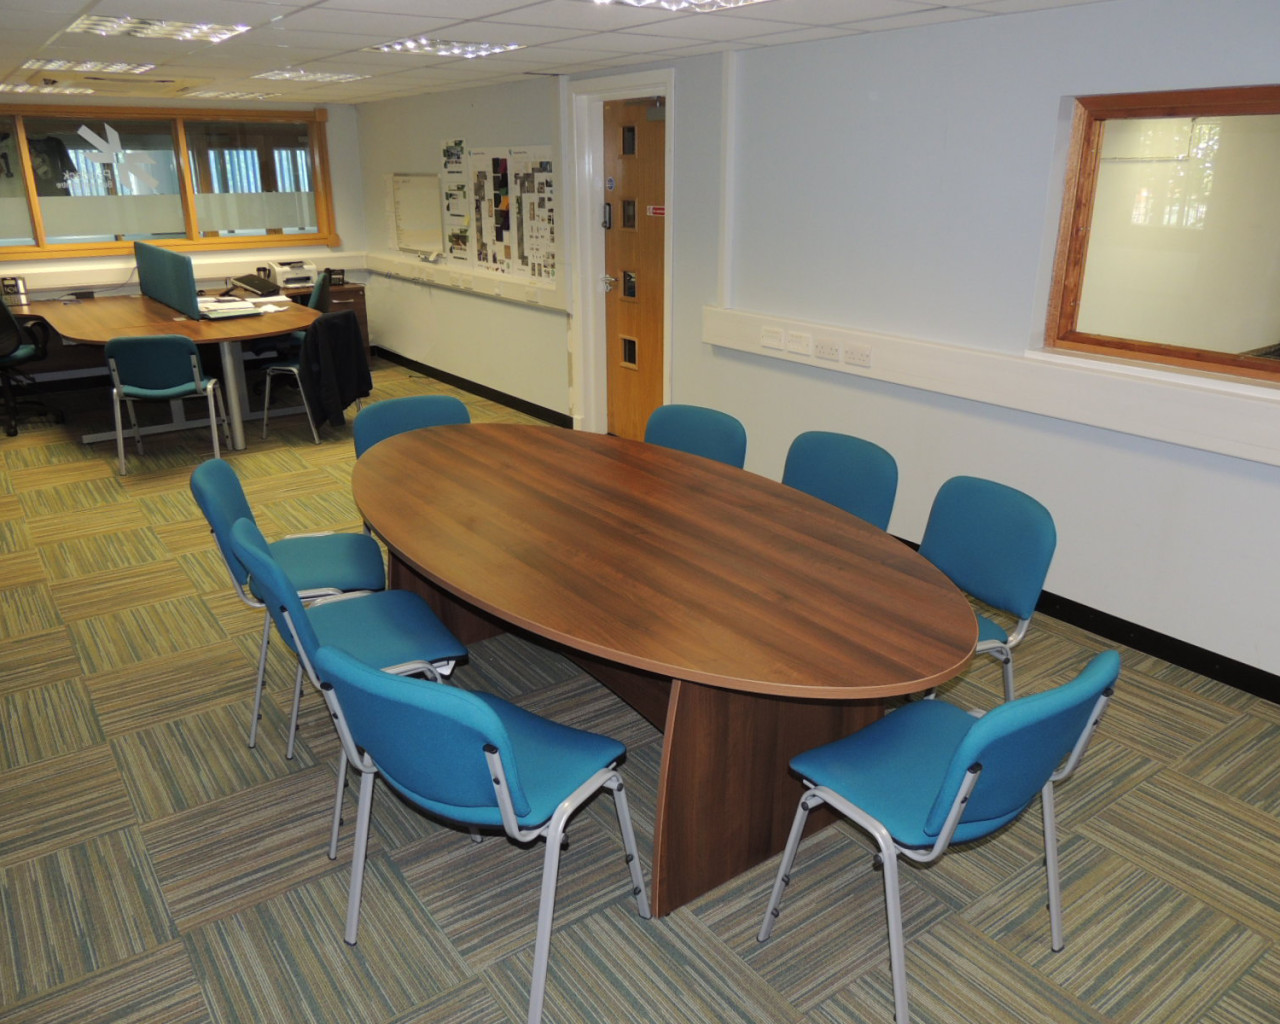 office furniture supplier Skelmersdale, Wigan, St Helens, Widnes, Runcorn, and Chester